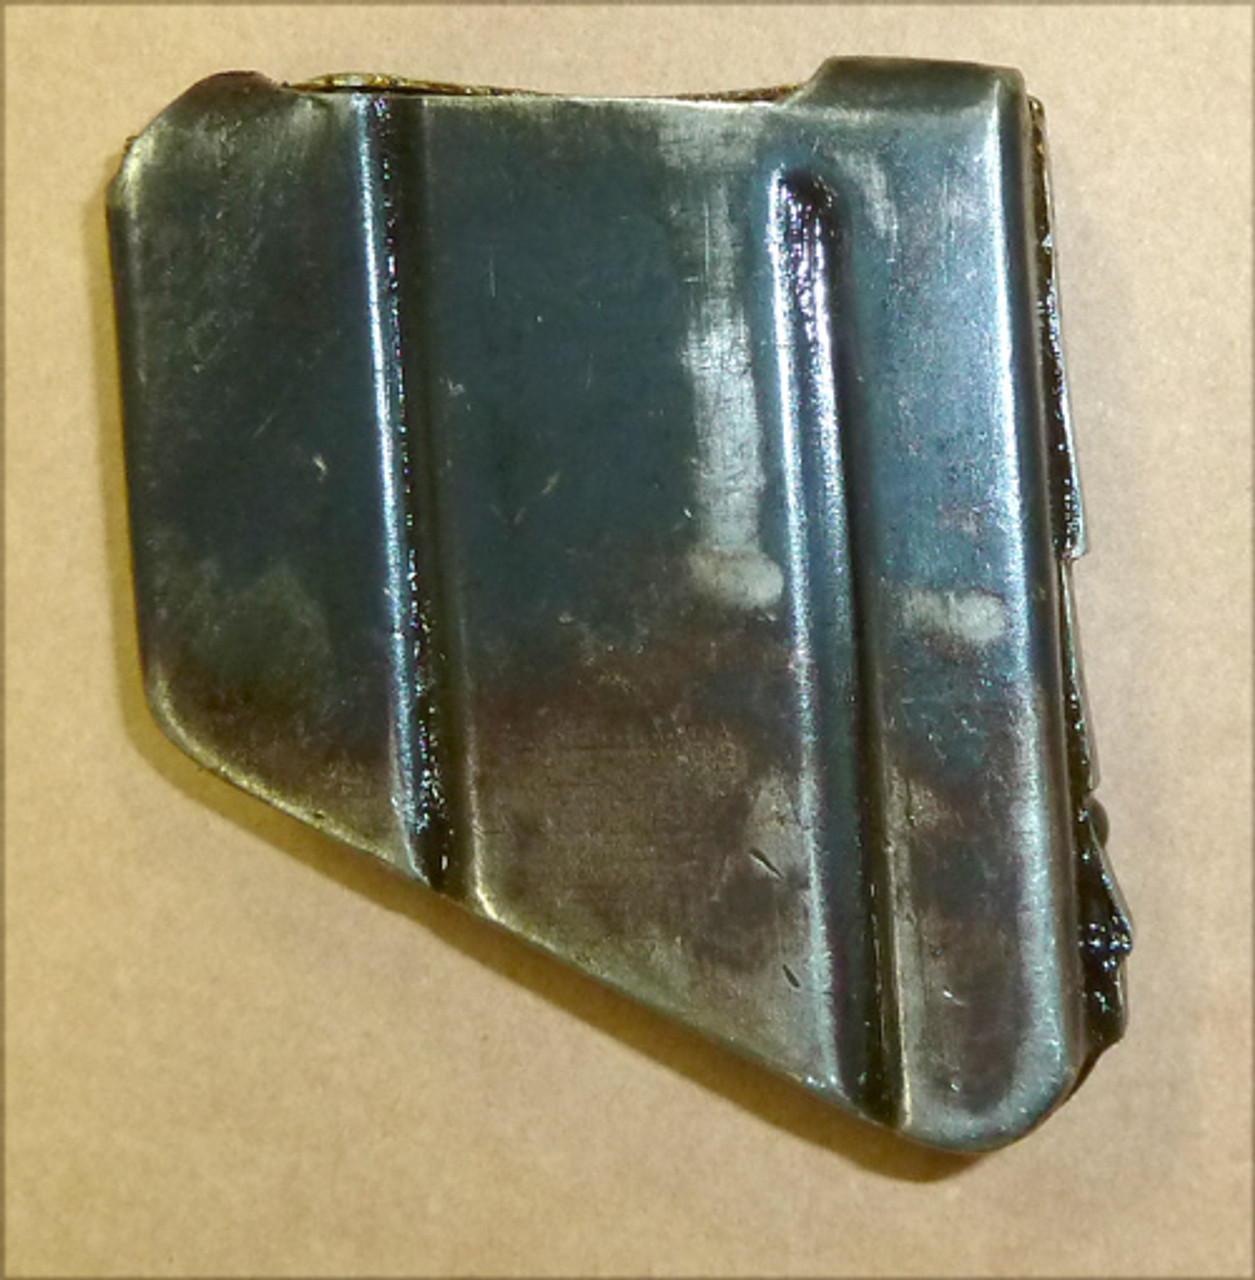 SMLE No. 1 MK III Magazine - Good Condition